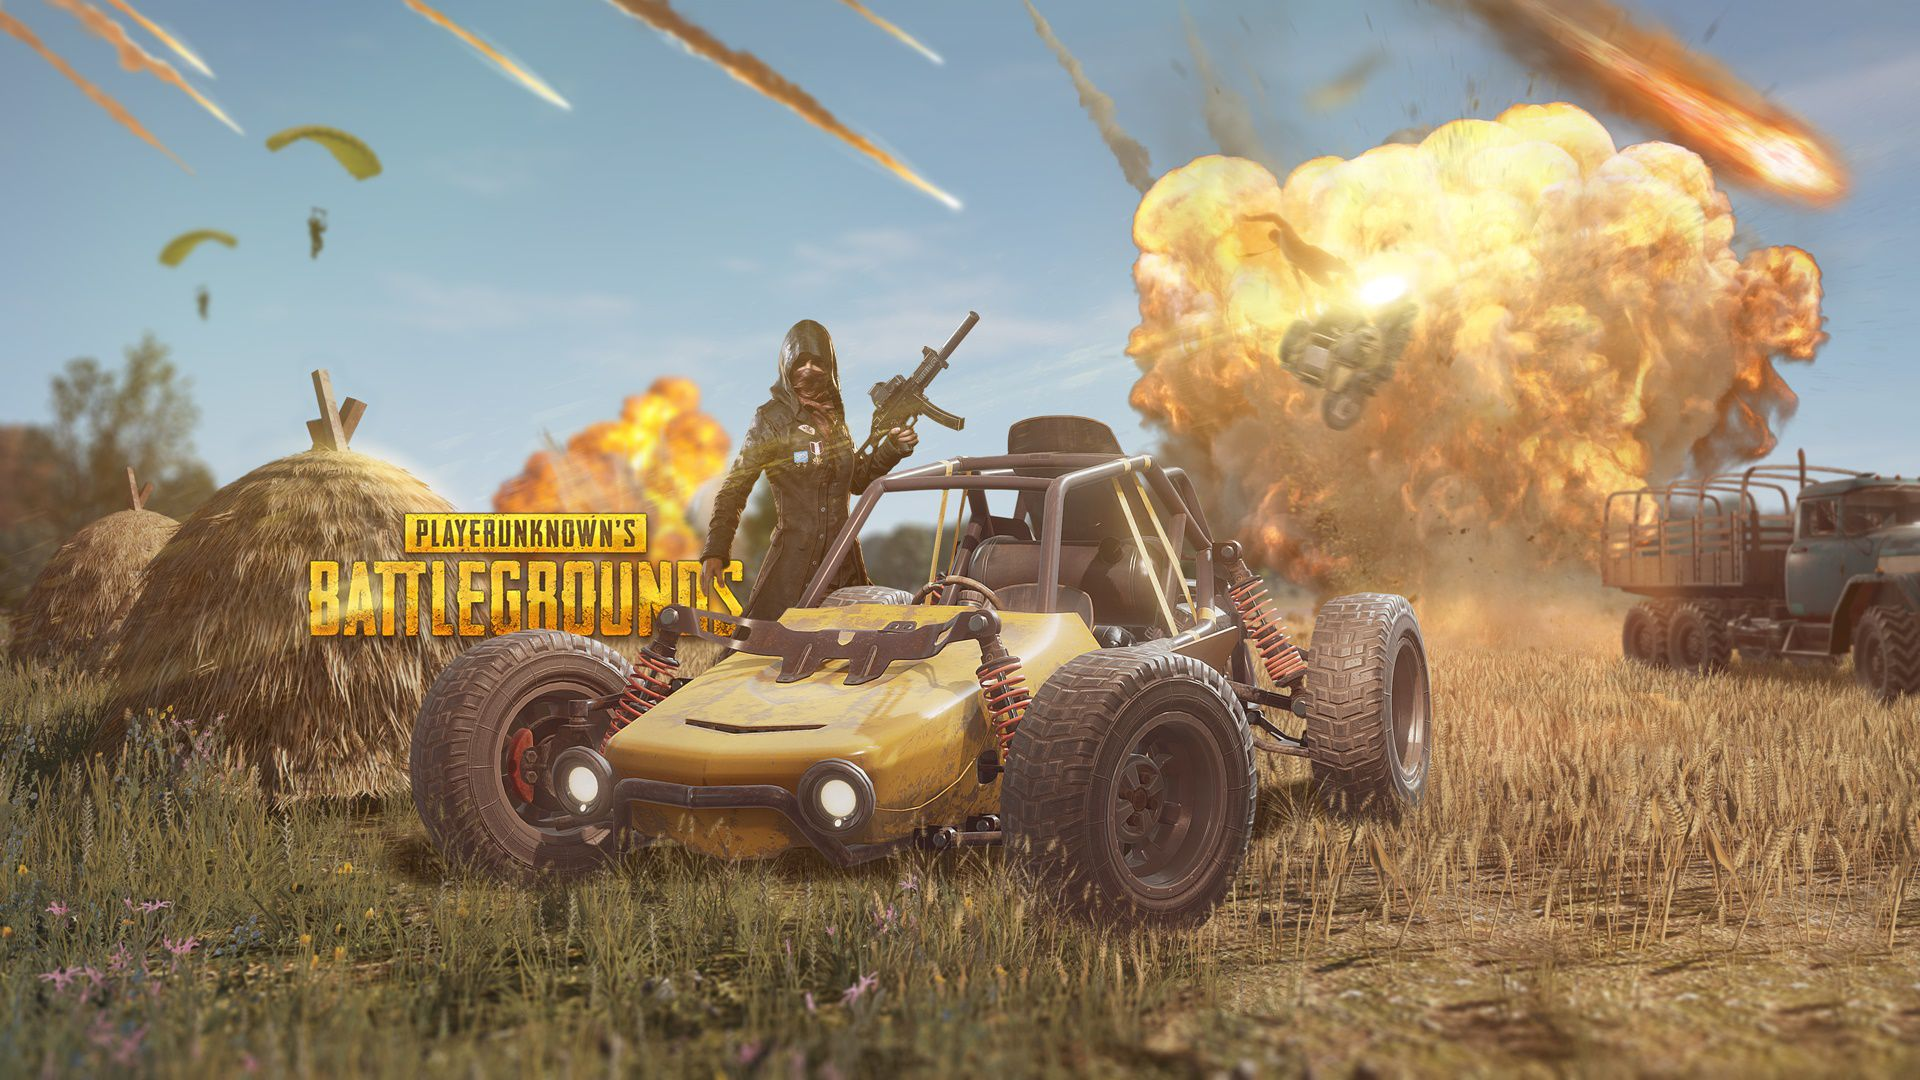 Pubg Wallpaper Dual Monitor: PlayerUnknown's Battlegrounds: PUBG Wallpapers And Photos